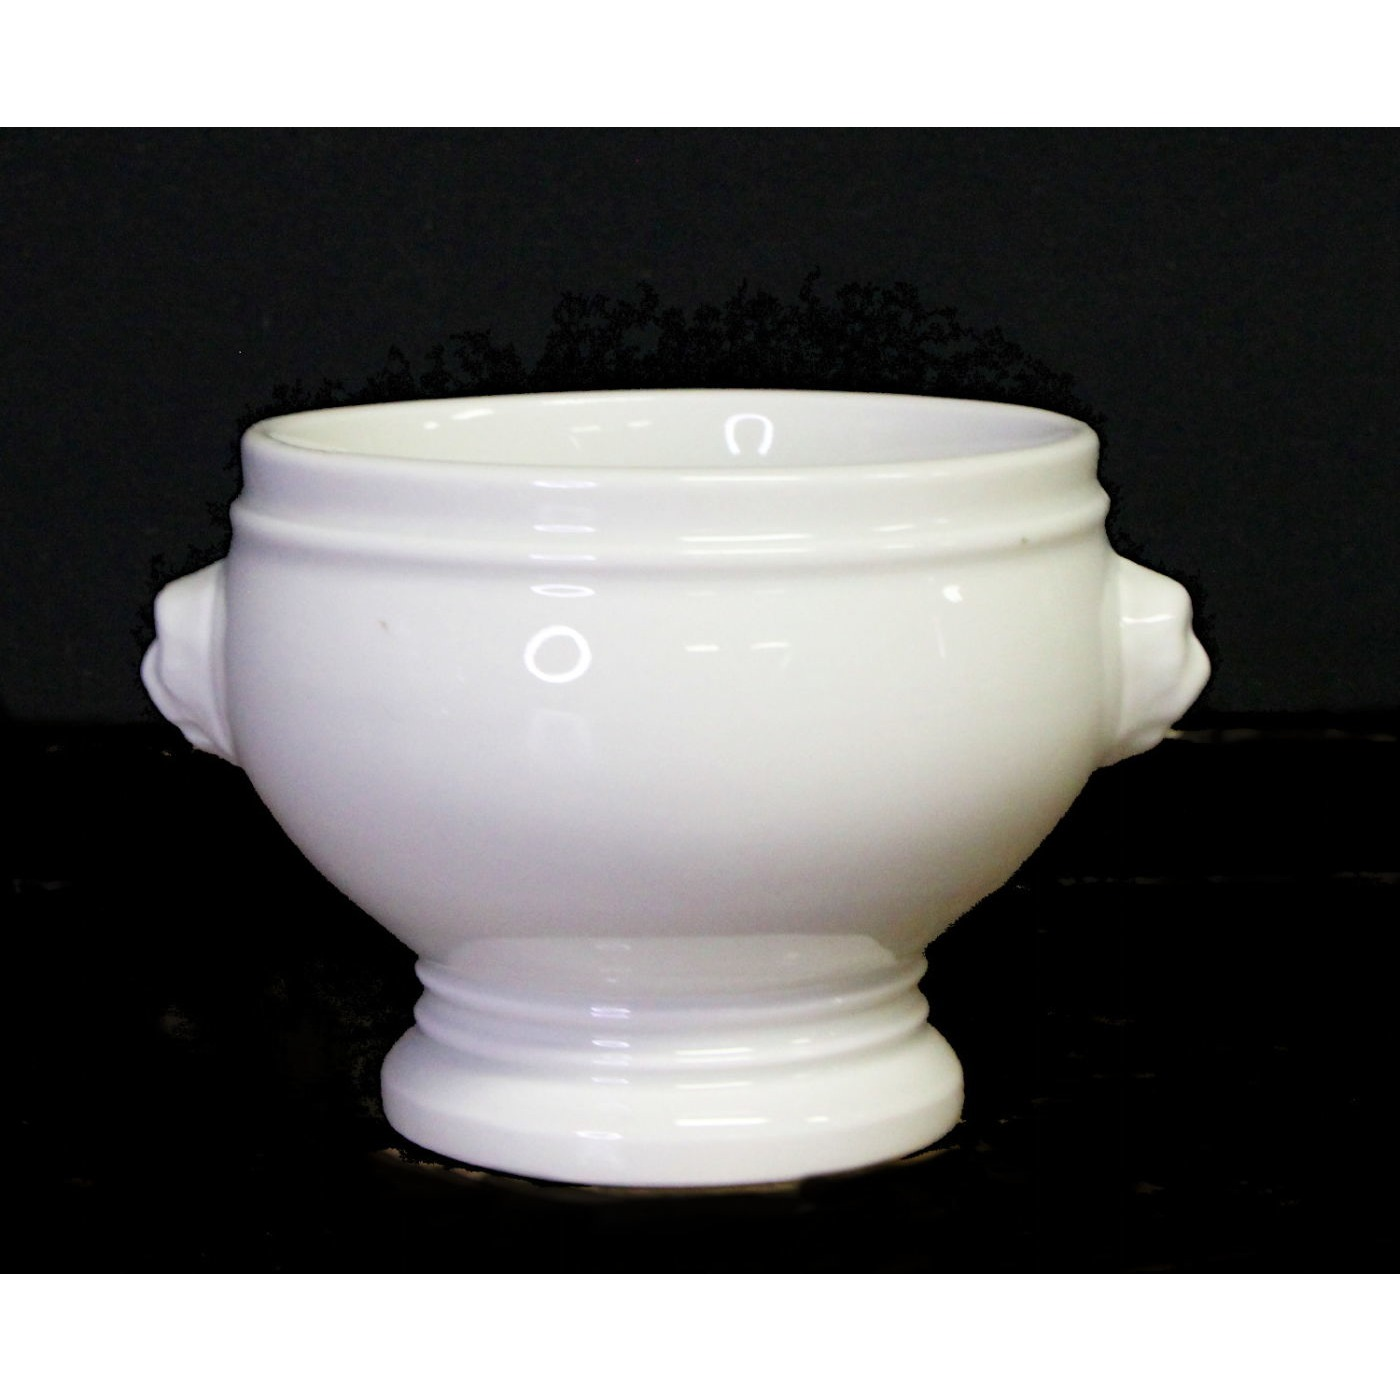 Wonderful Footed Cream Soup Pedestal Cameo Bowl - 2 available